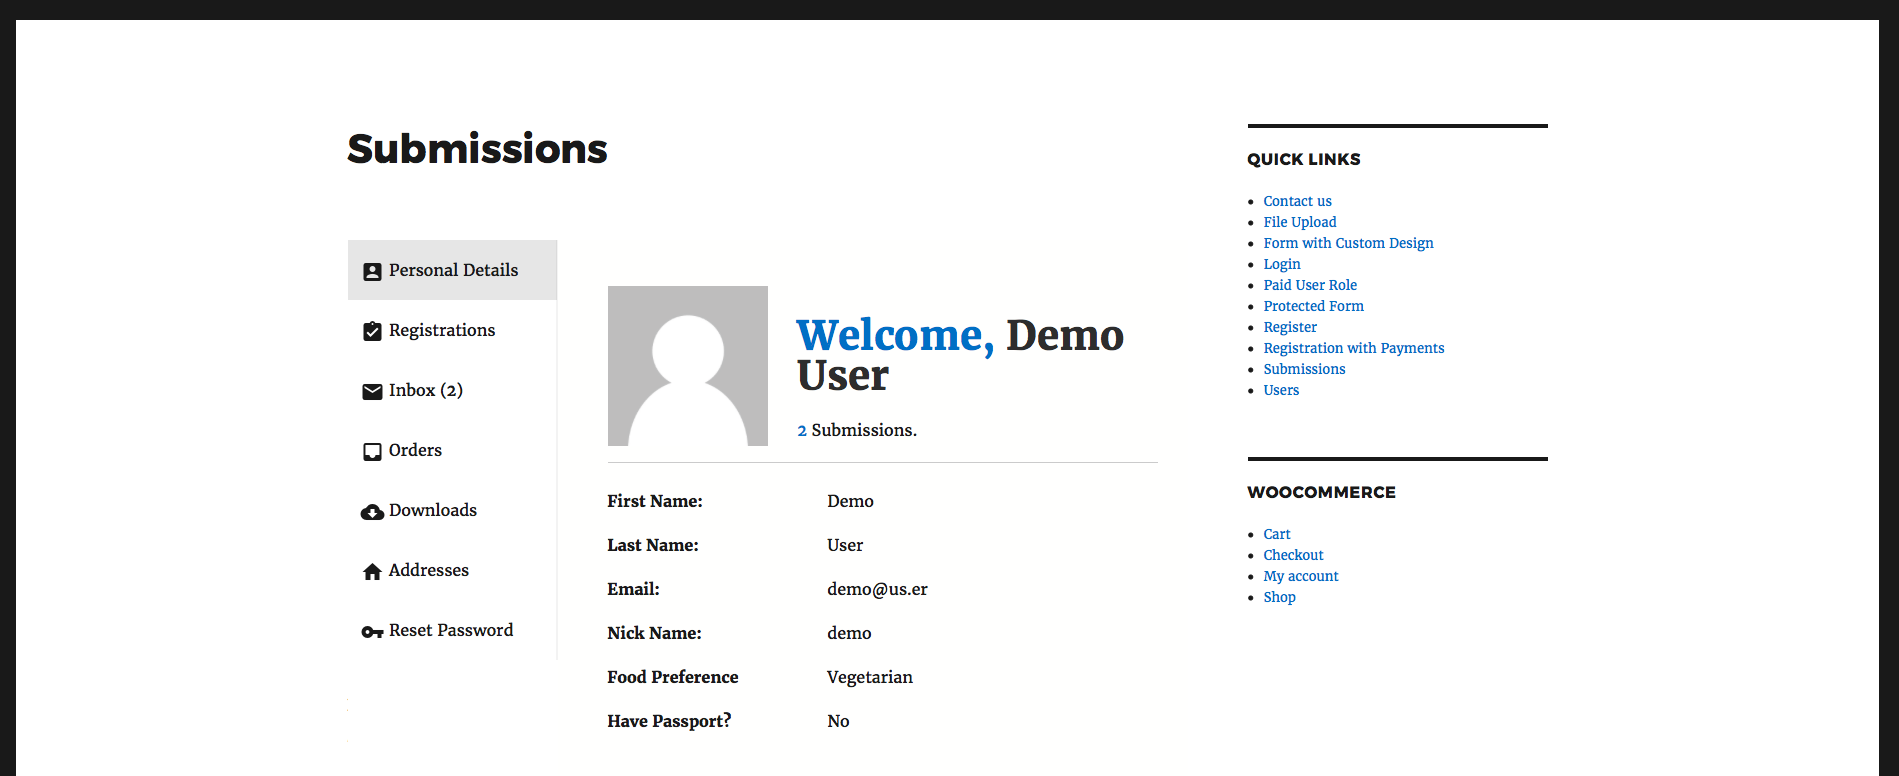 custom-registration-form-builder-with-submission-manager screenshot 4